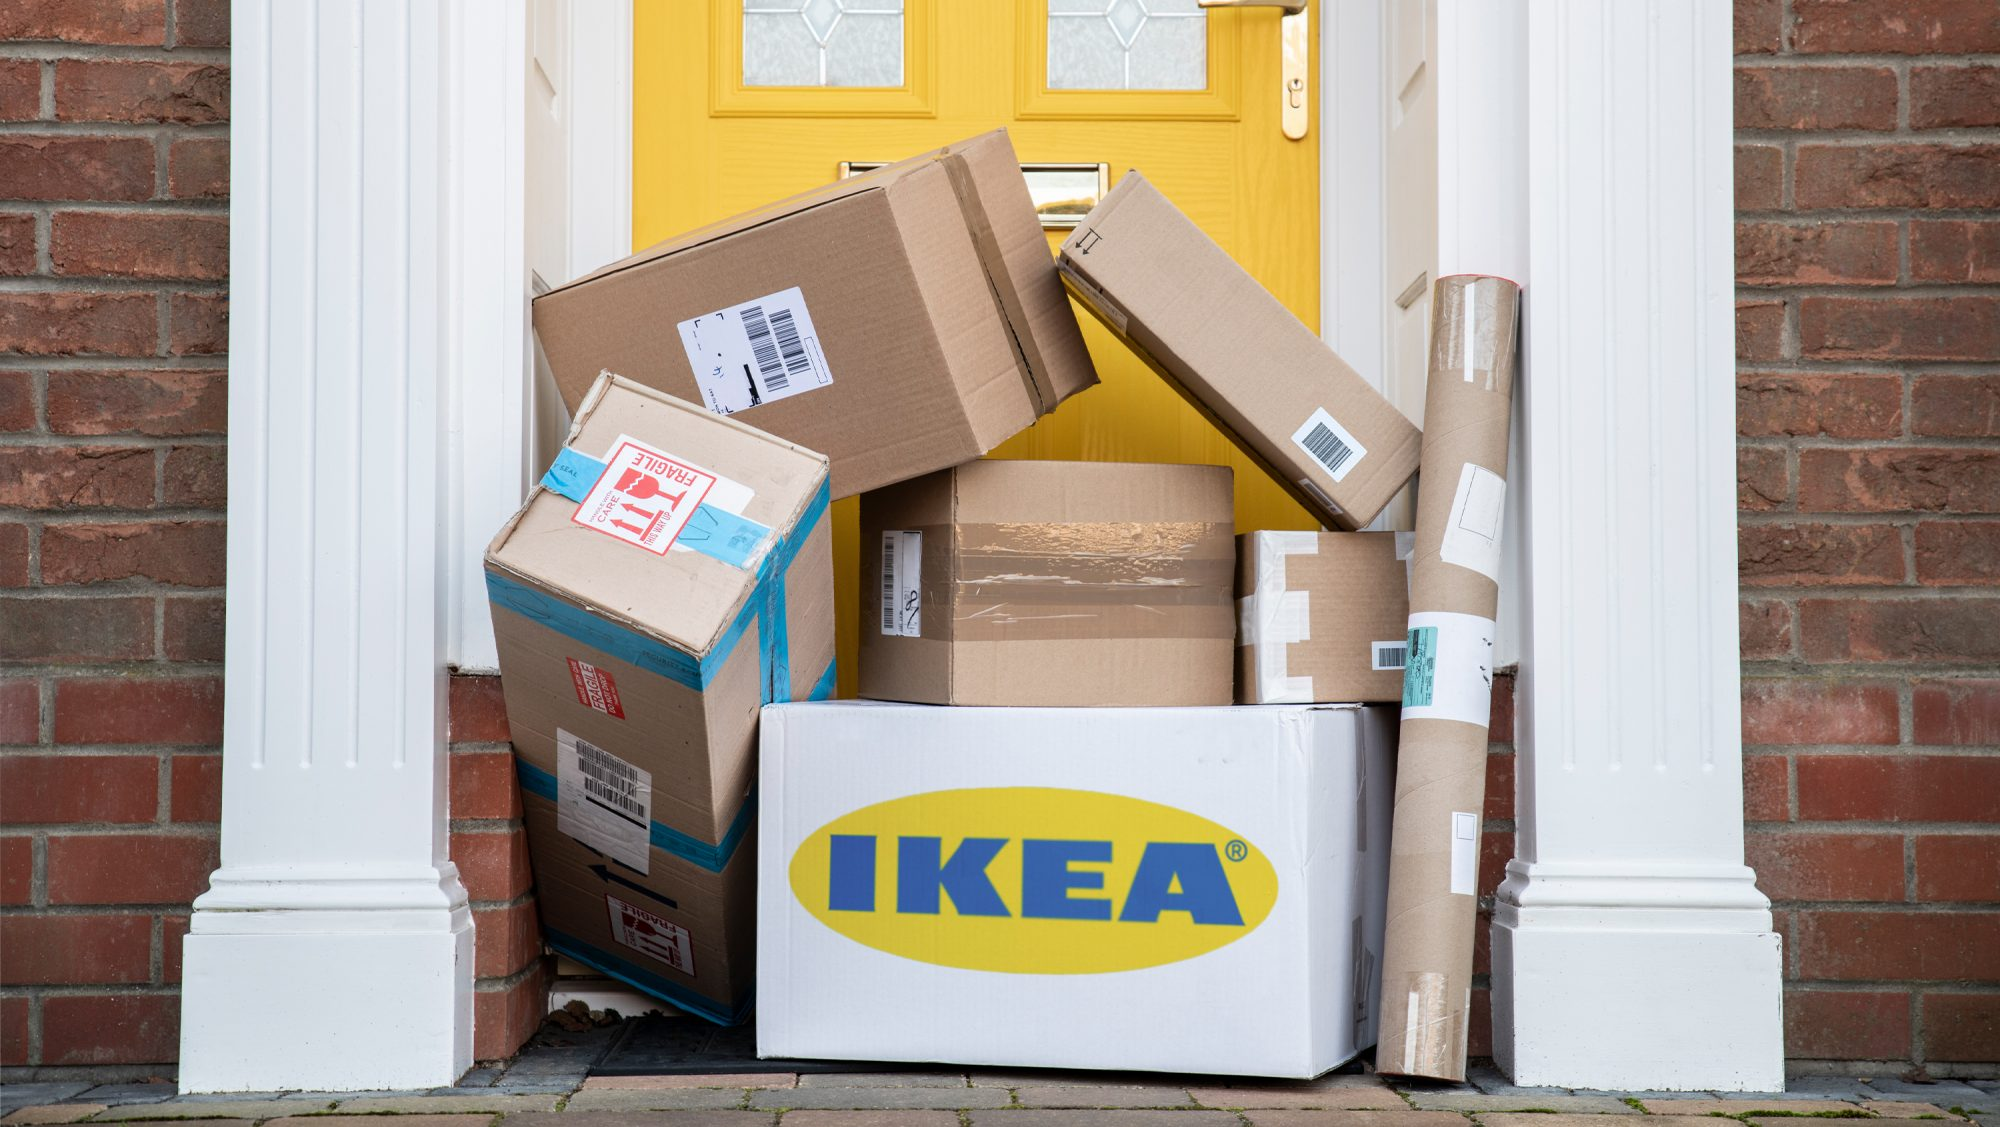 IKEA delivery - ikea delivery information